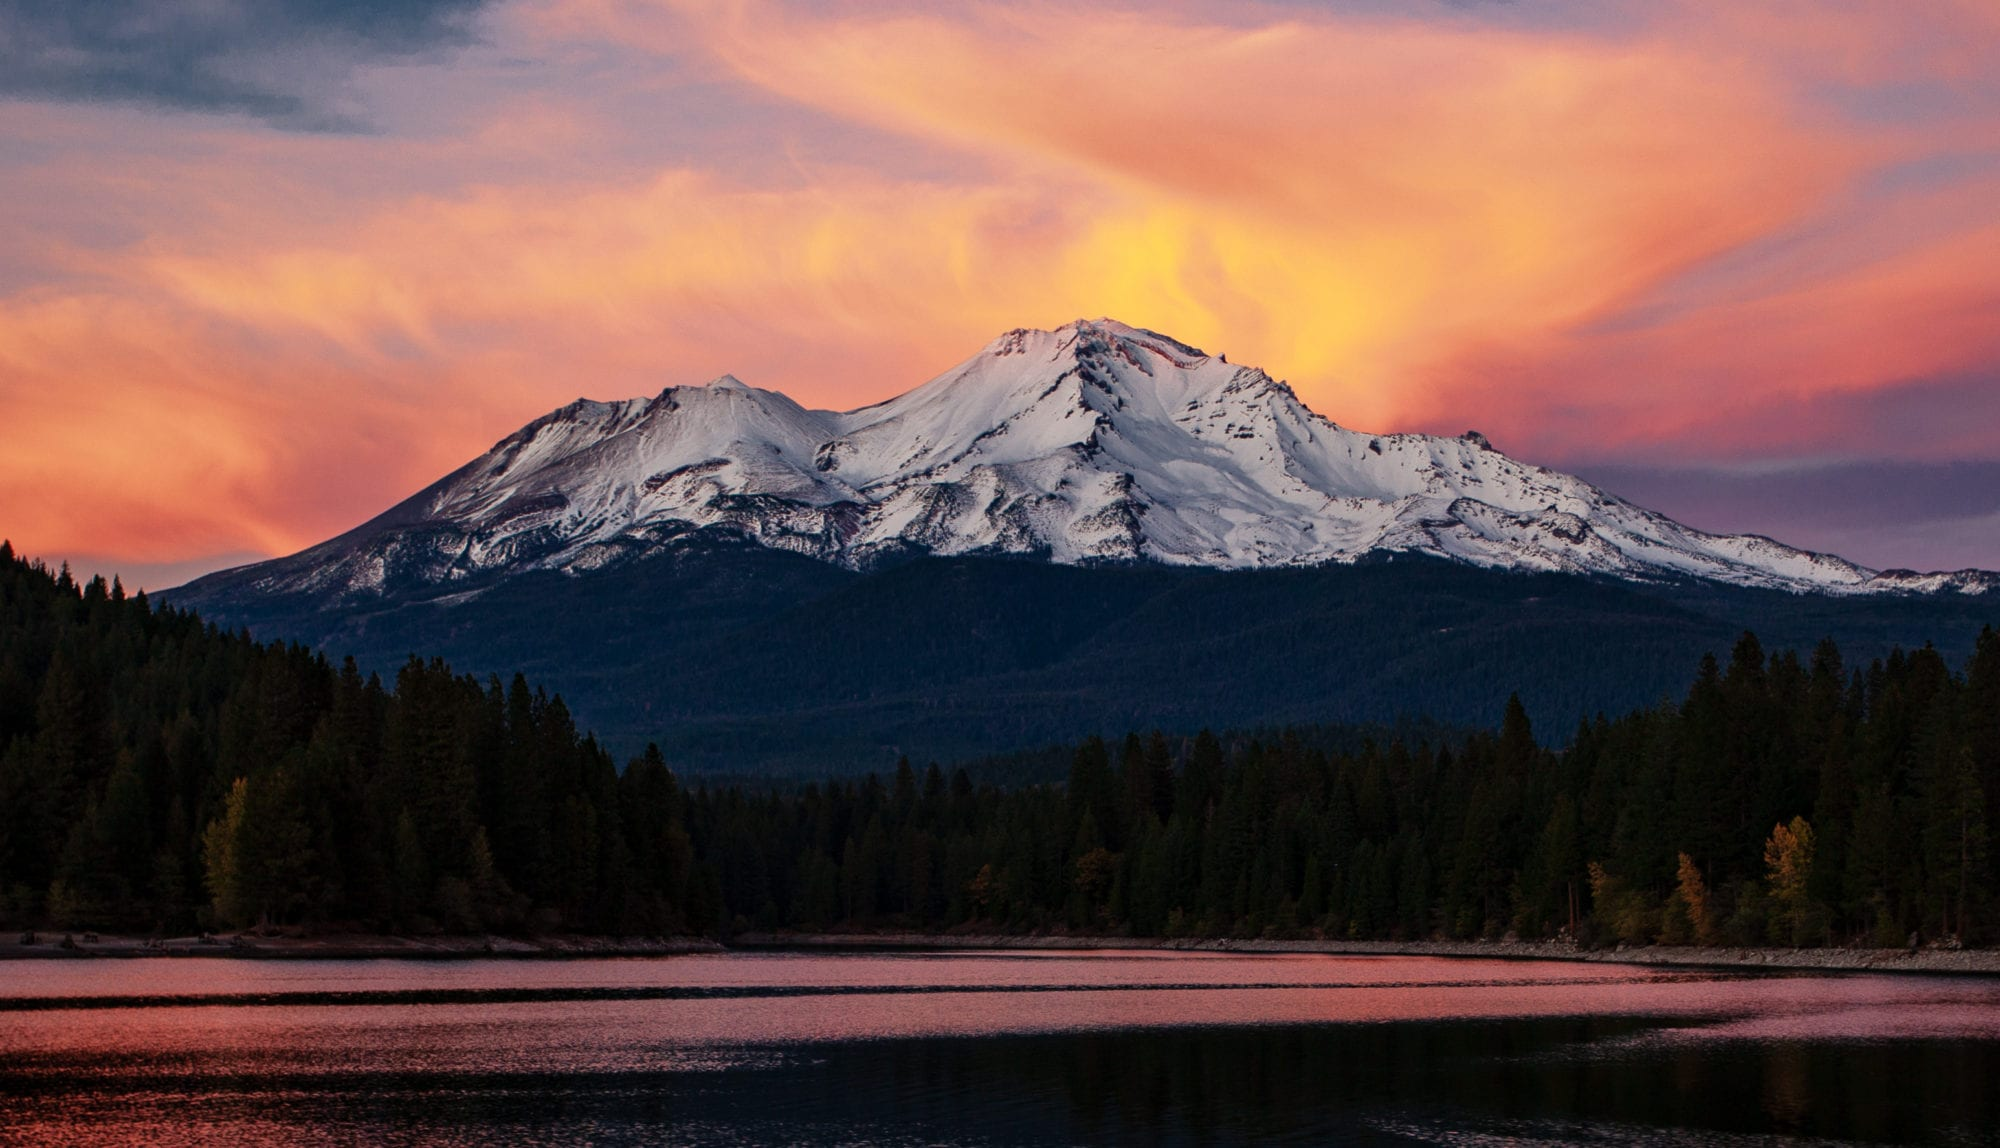 Mount Shasta Trail Association